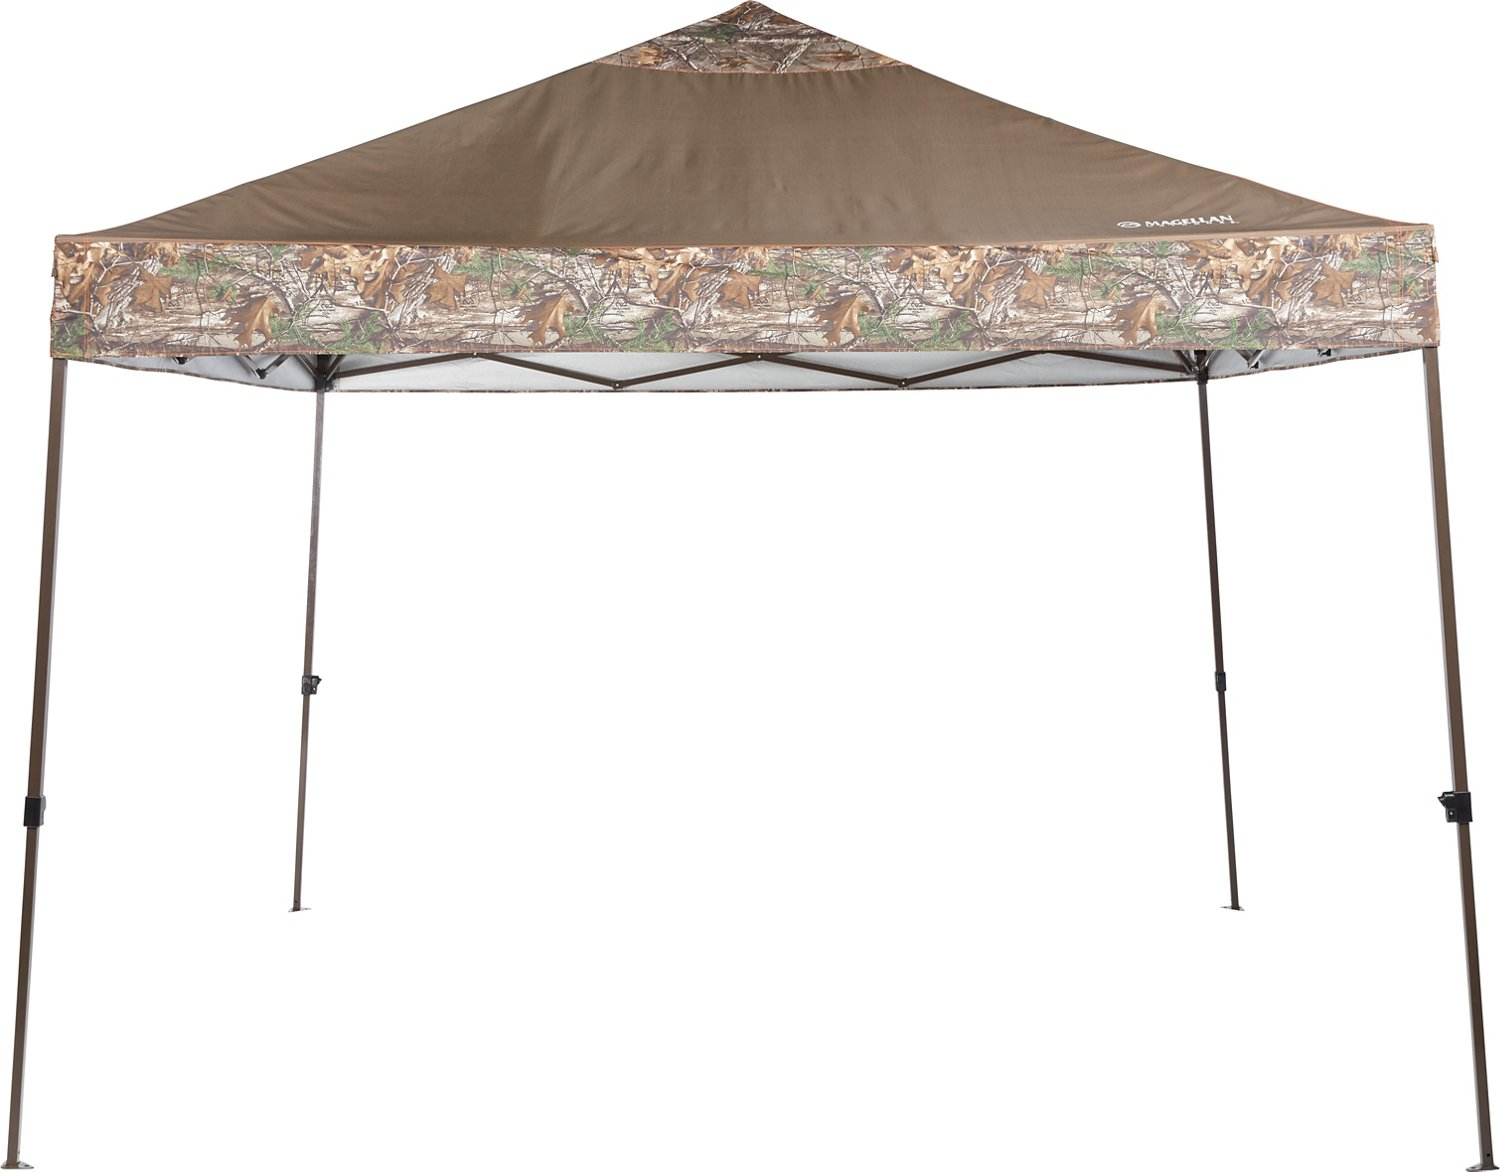 sc 1 st  Academy Sports + Outdoors & Magellan Outdoors 10 ft x 10 ft Realtree Xtra Camo Canopy | Academy